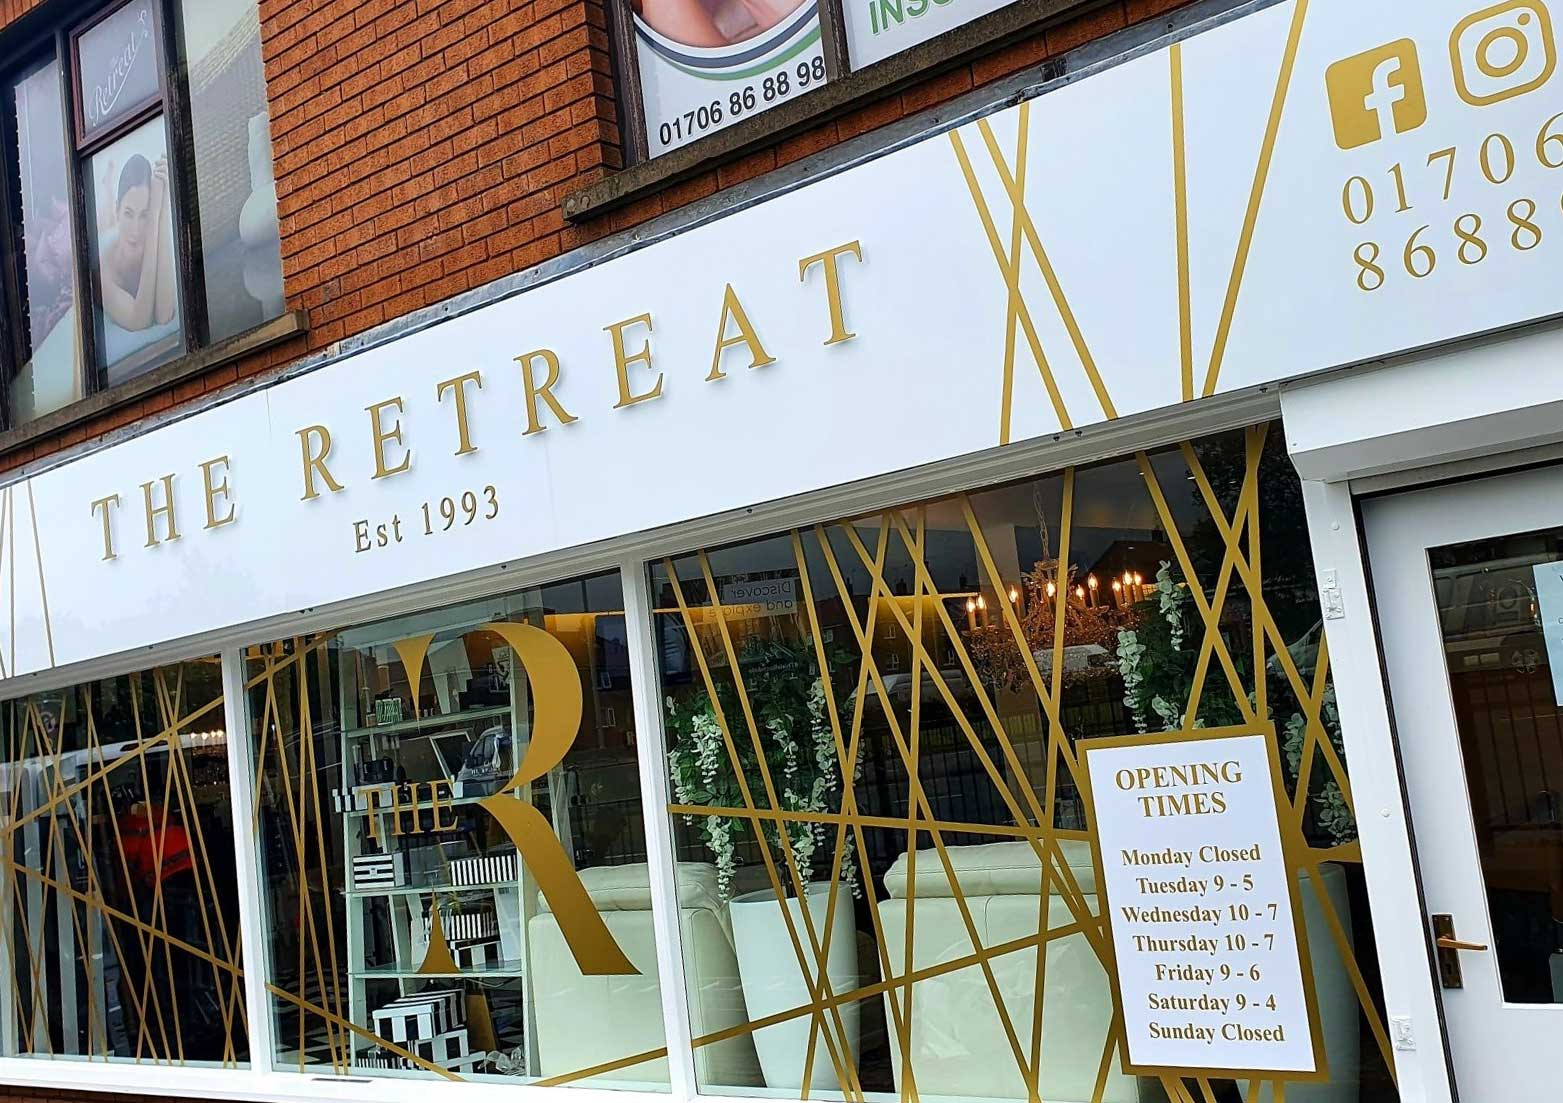 The Retreat Beauty Salon External Signage in Rochdale